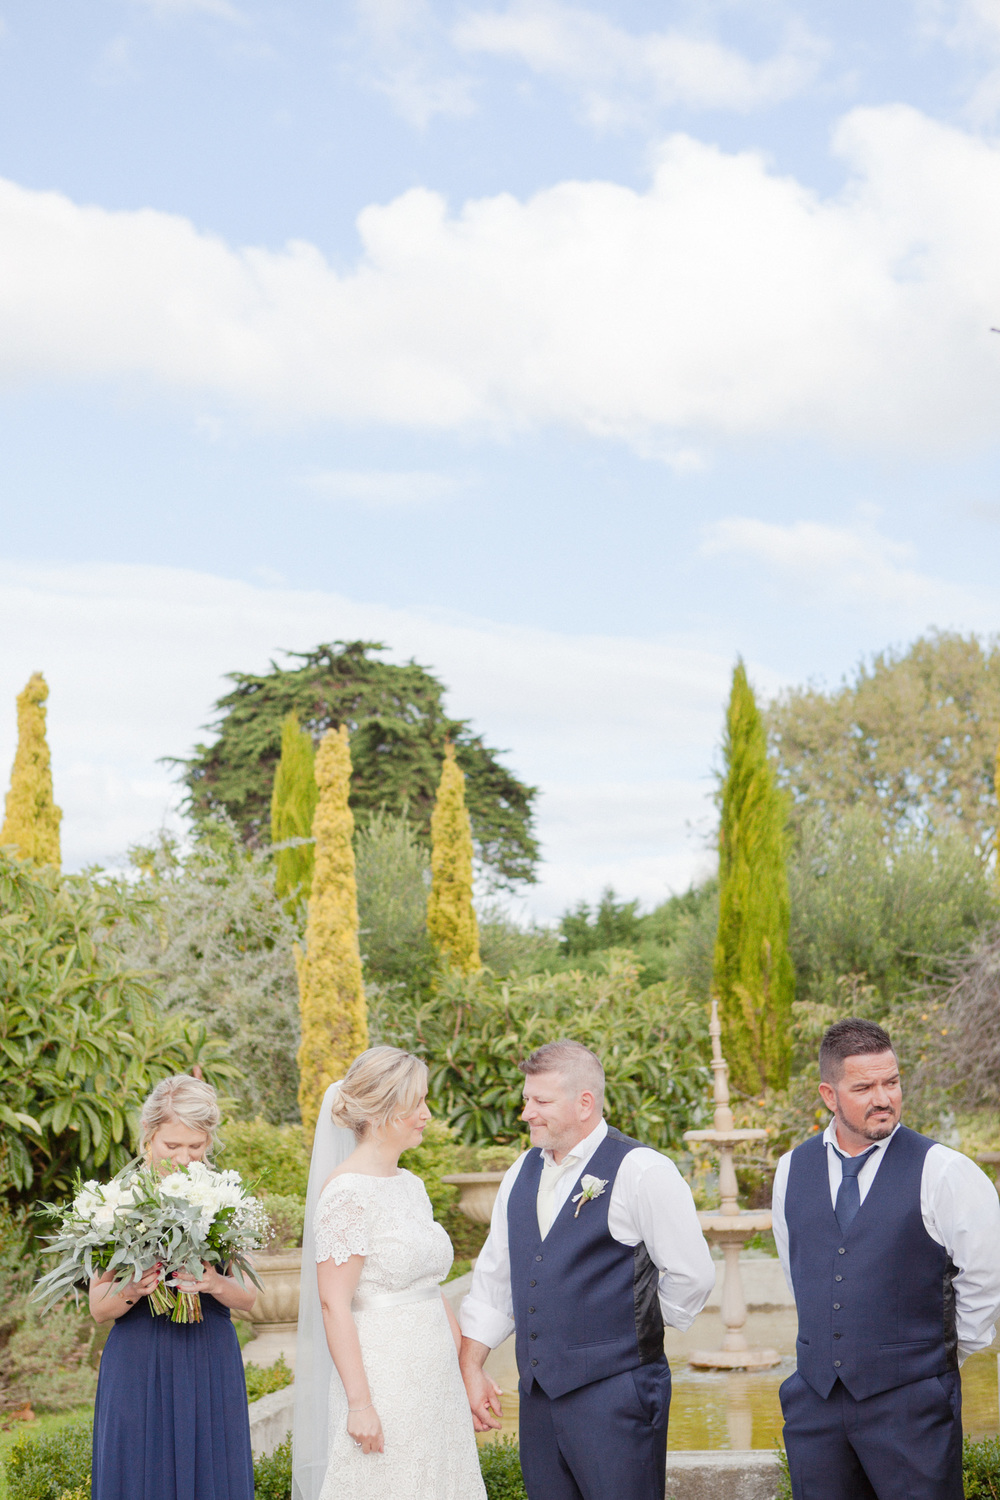 Stunning outdoor wedding ceremony at The Milk Station